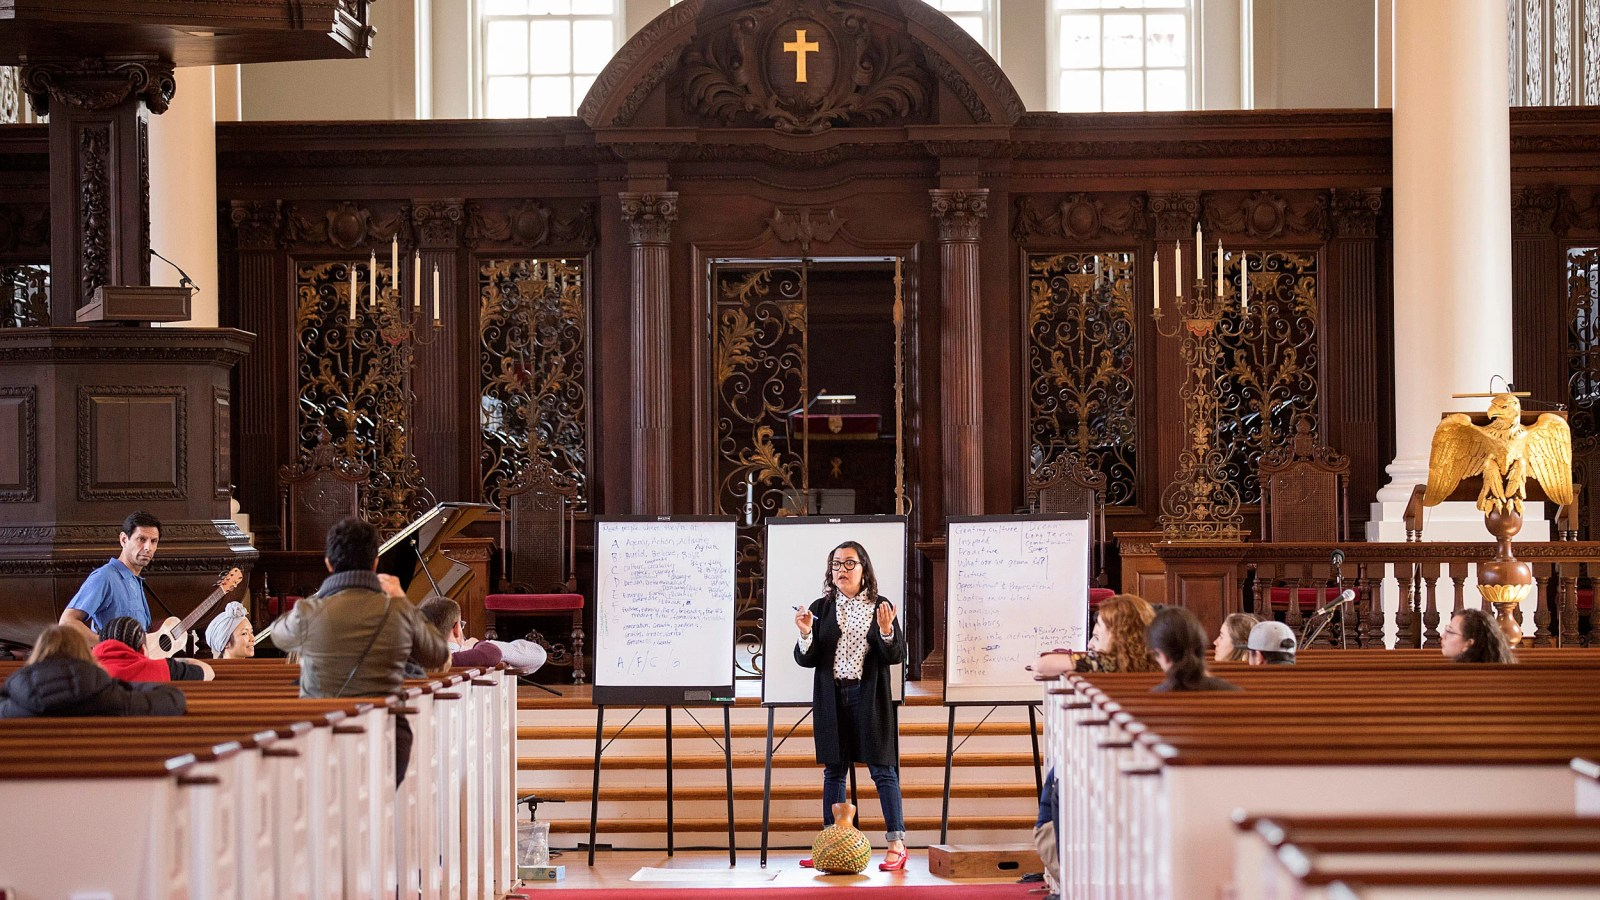 Martha Gonzalez leads a songwriting workshop at Memorial Church.